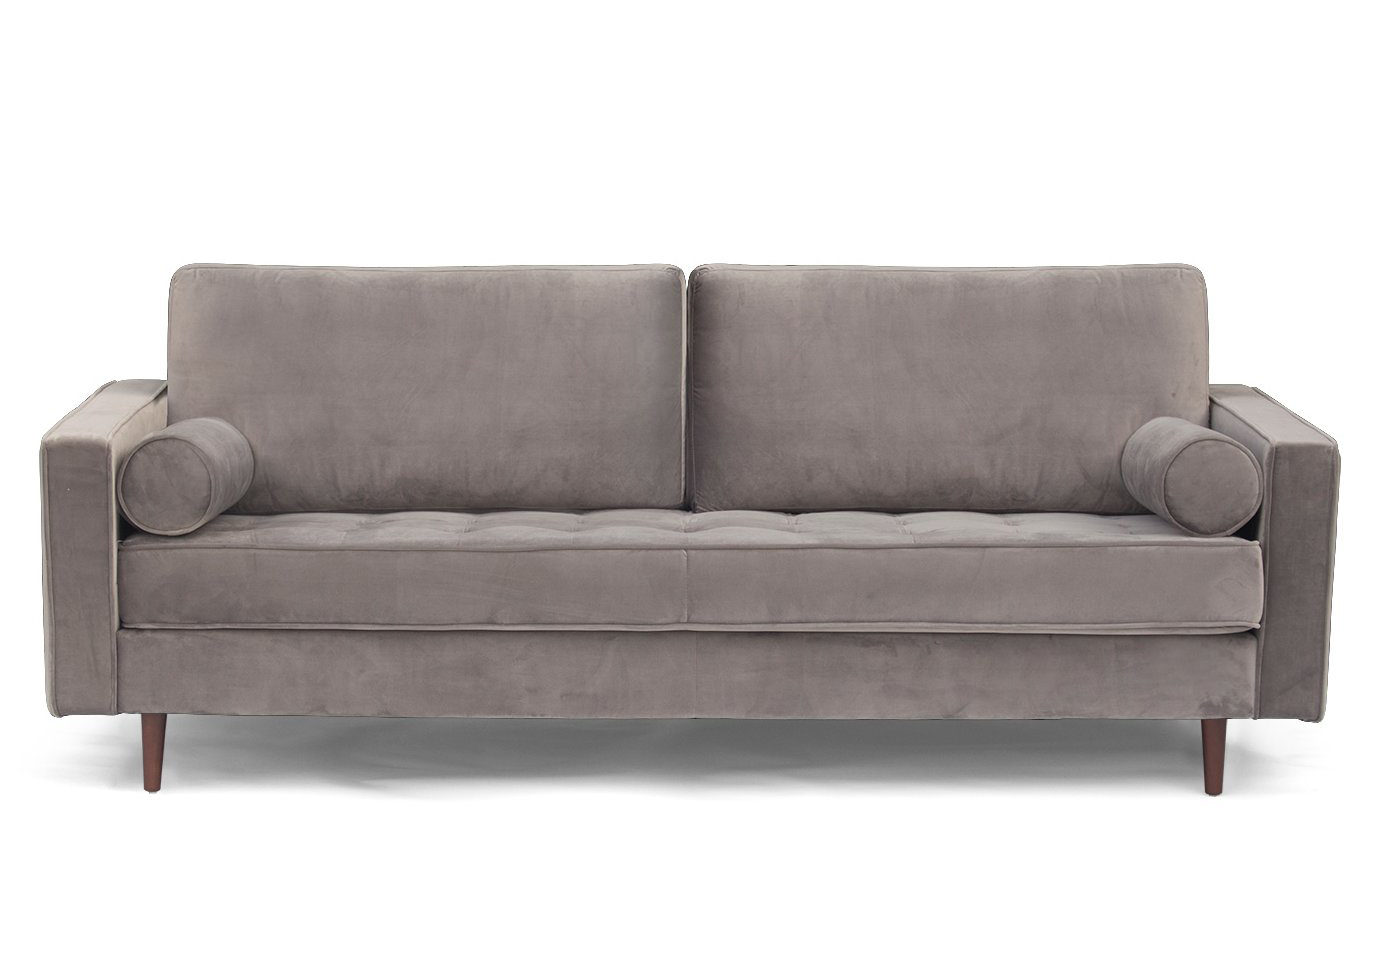 How to get affordable sofas that would serve you well